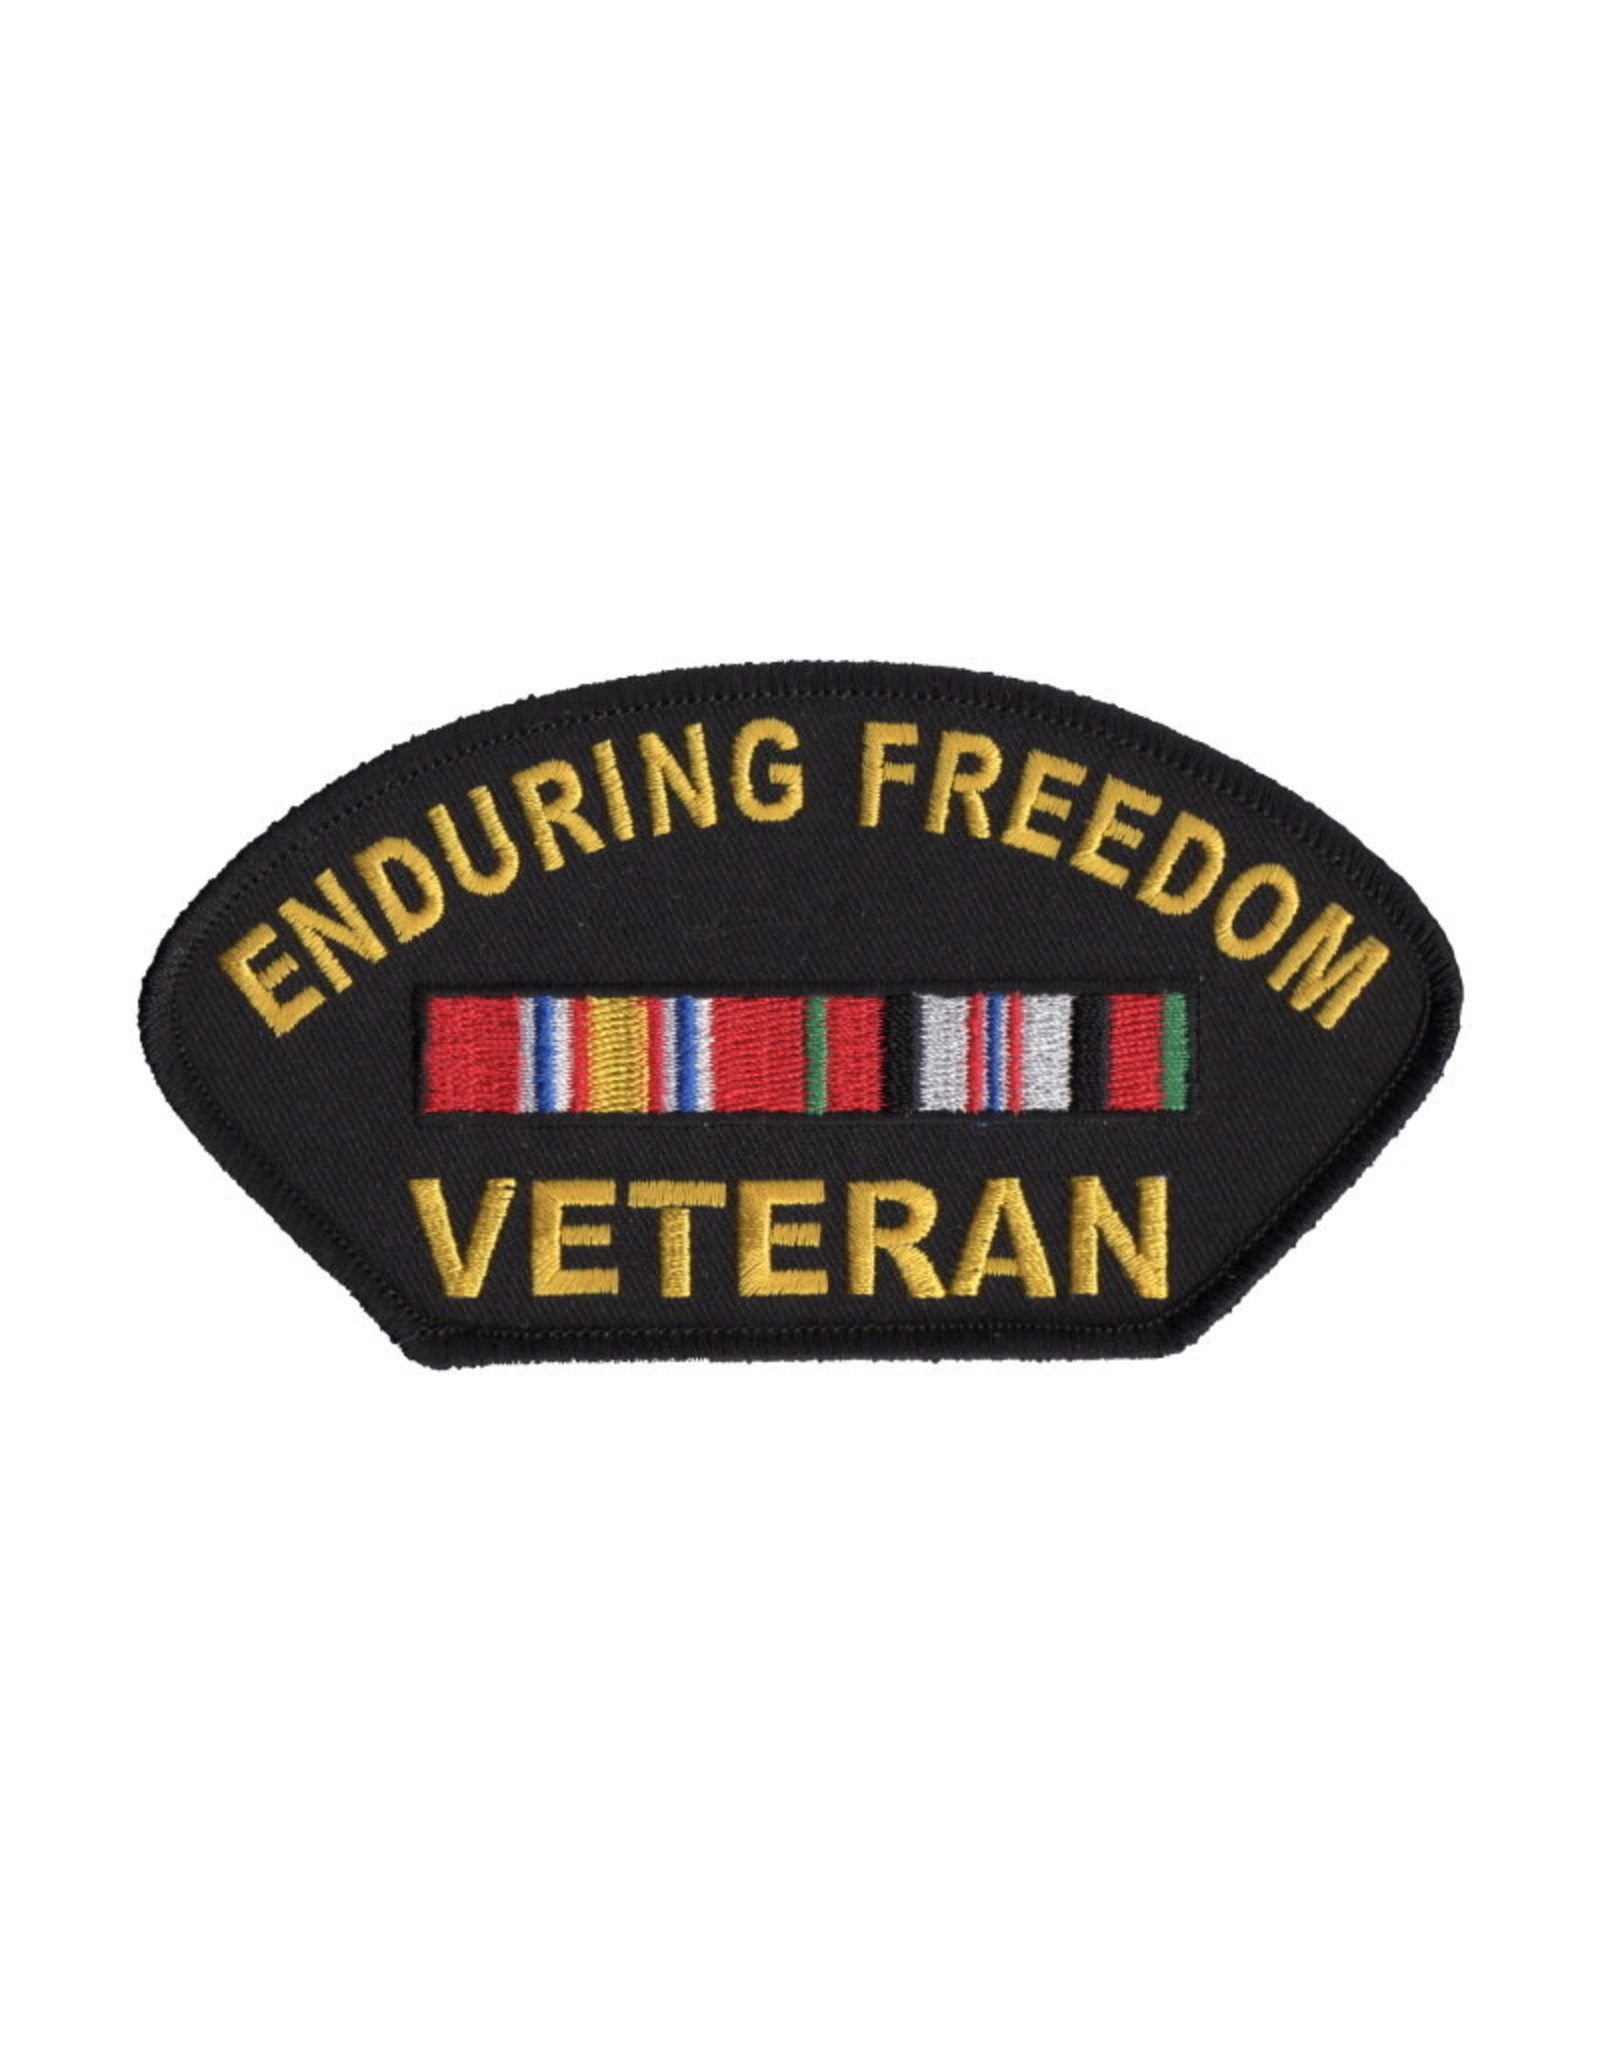 "MidMil Embroidered Enduring Freedom Veteran Patch with Ribbons 5.2"" wide x 2.8"" high"